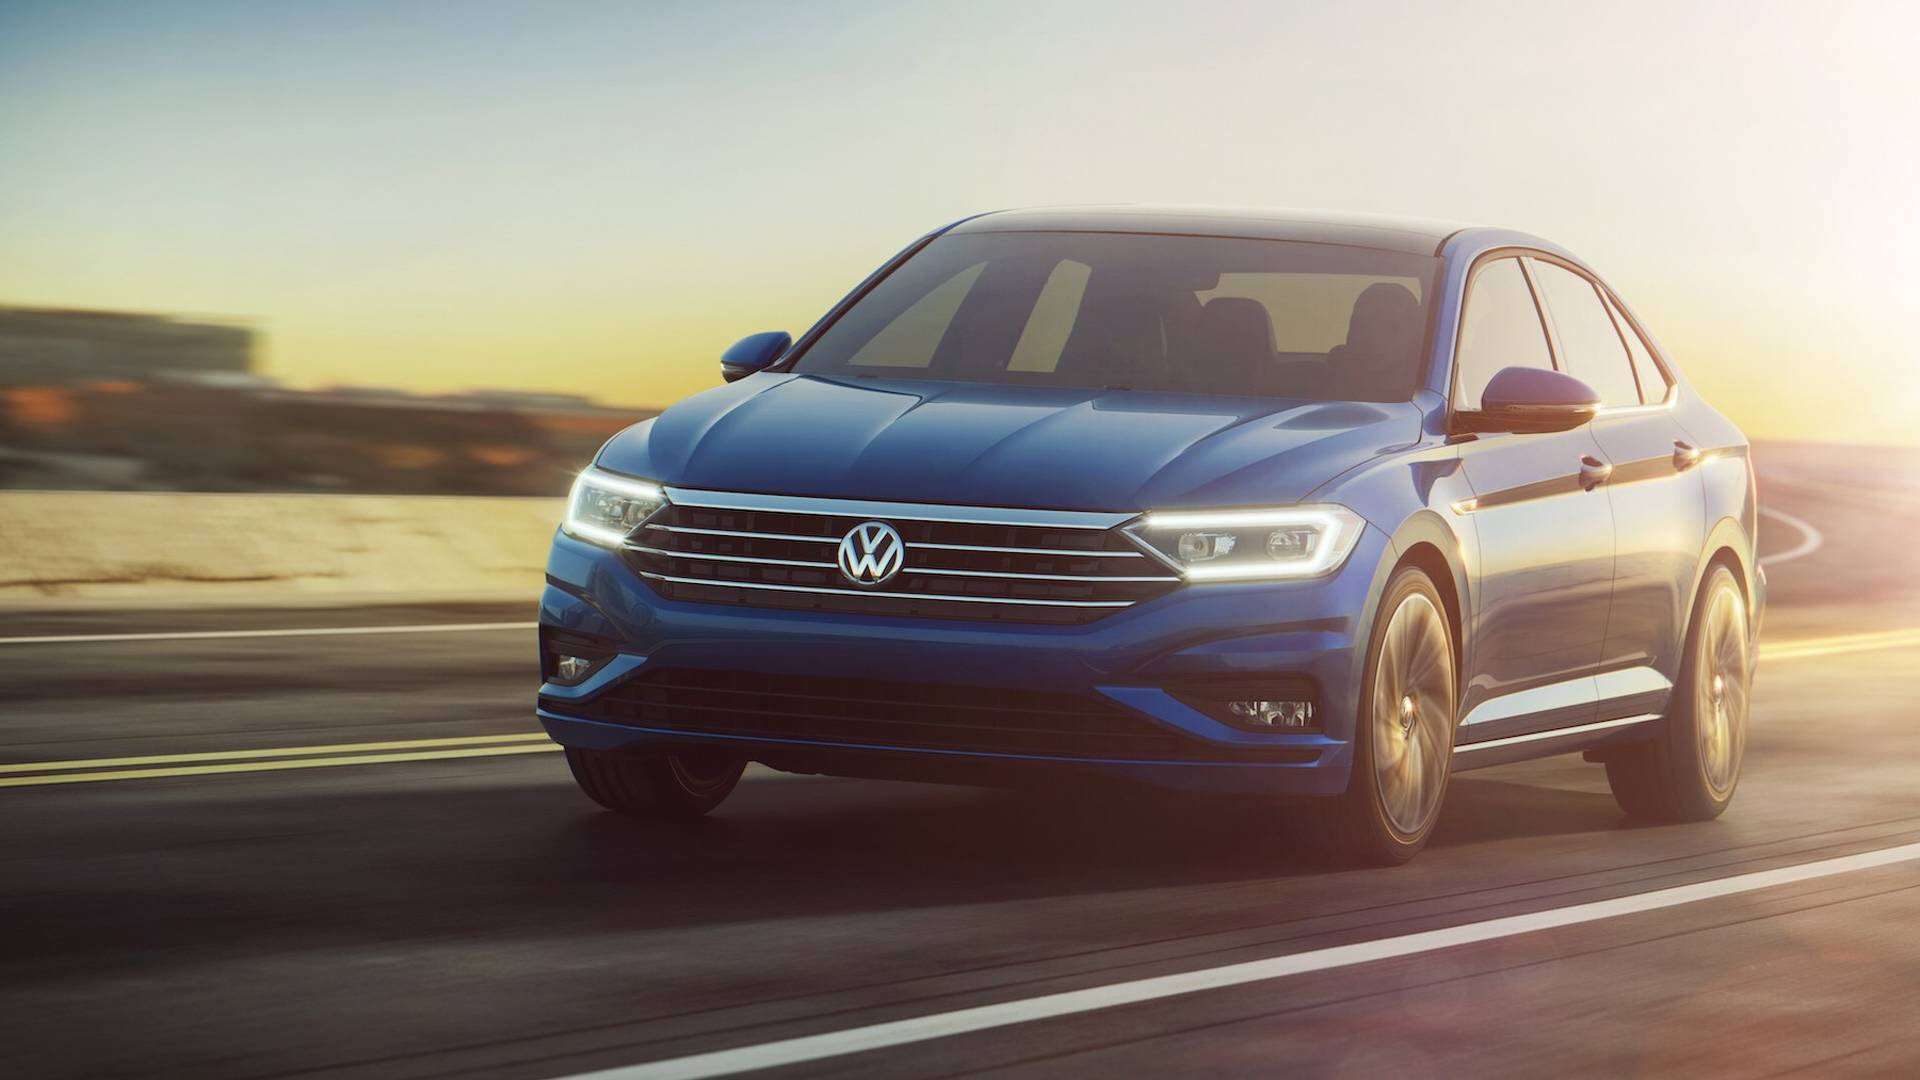 ct be volkswagen biz experts nervous emissions should tribune story owners recalls business about scandal chicago say jetta